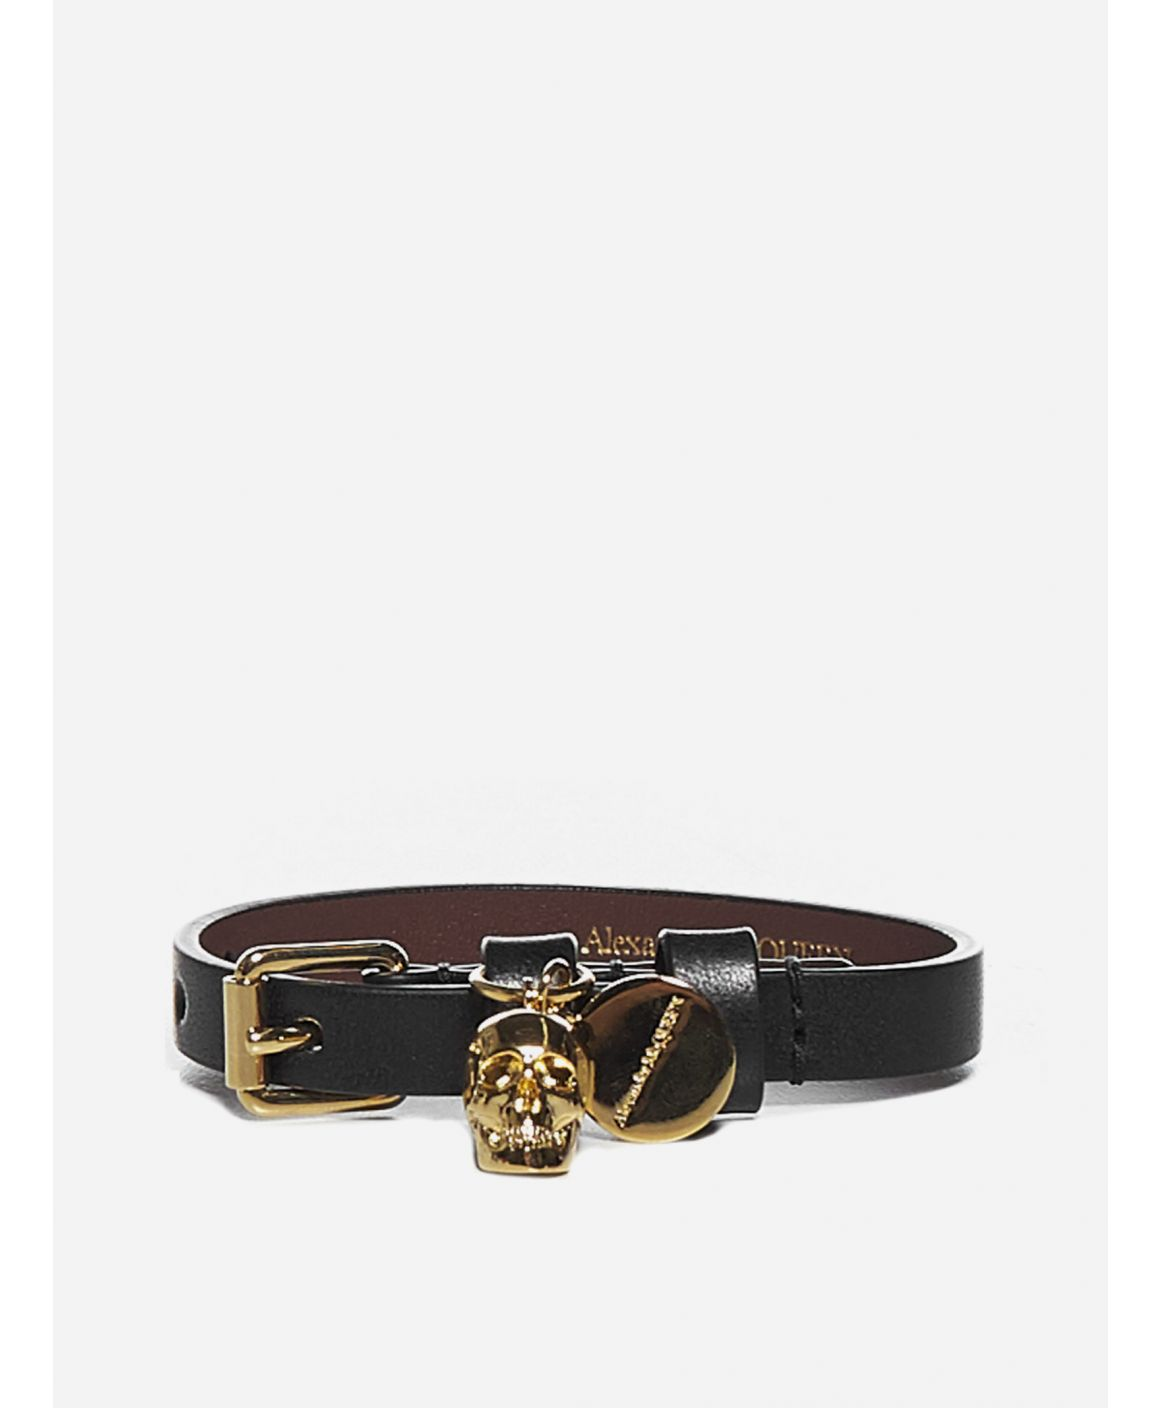 Skull and logo leather bracelet